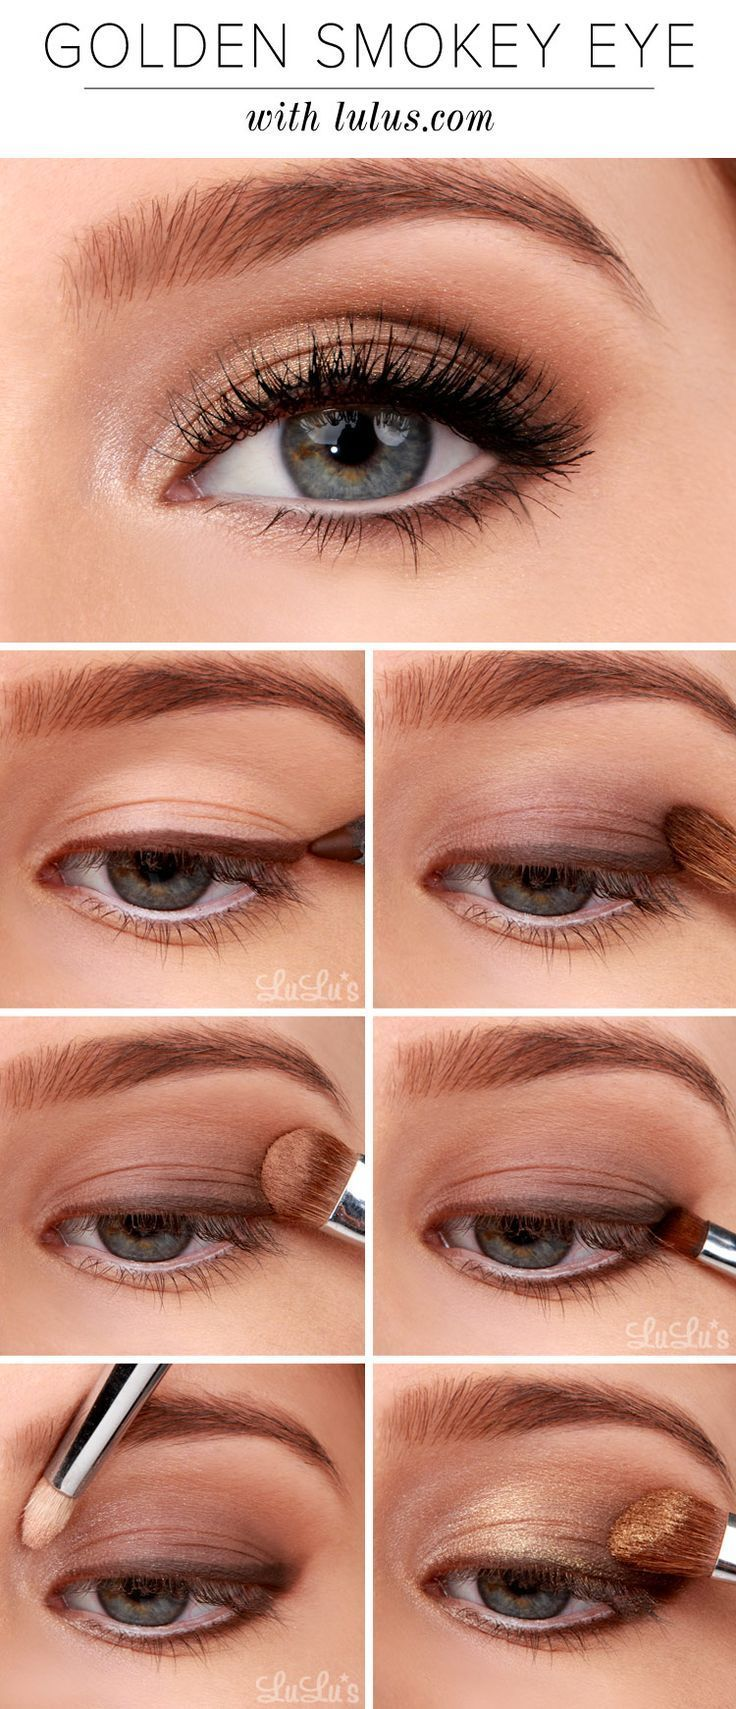 Golden Smokey Eye Makeup Tutorial Pictures, Photos, and Images for Facebook, Tumblr, Pinterest, and Twitter